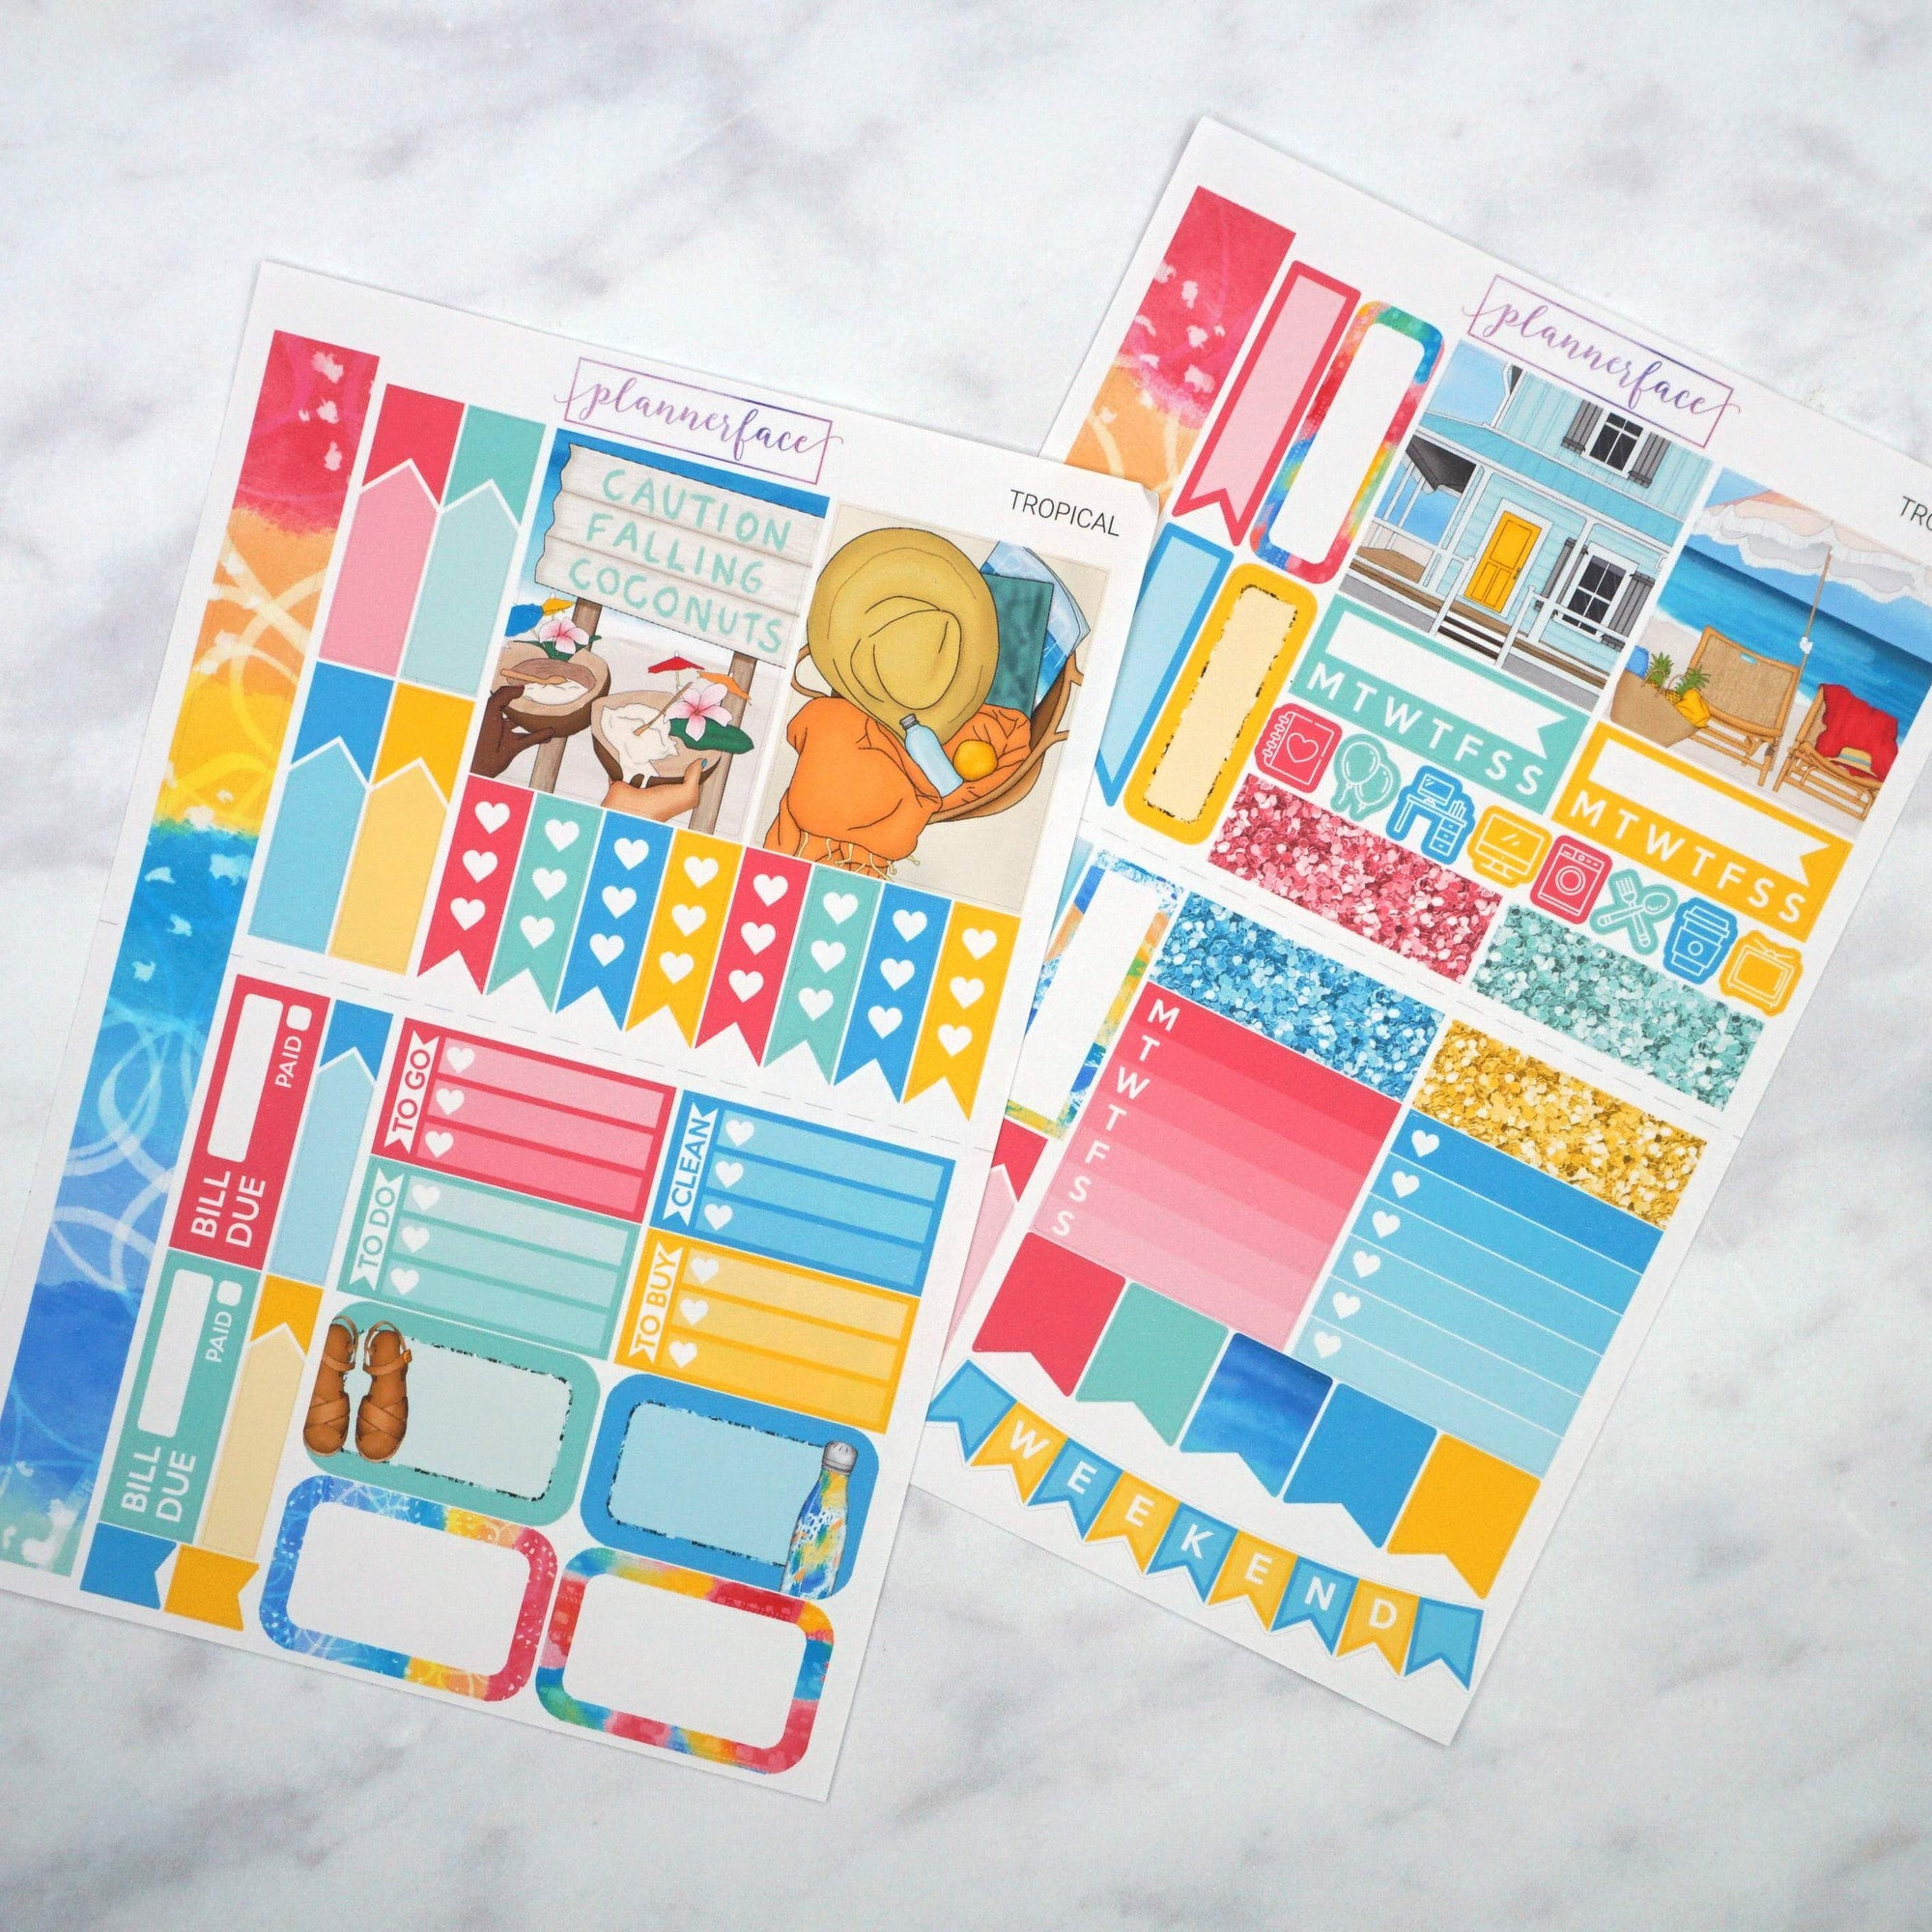 Plannerface Tropical Mini Kit Planner Stickers